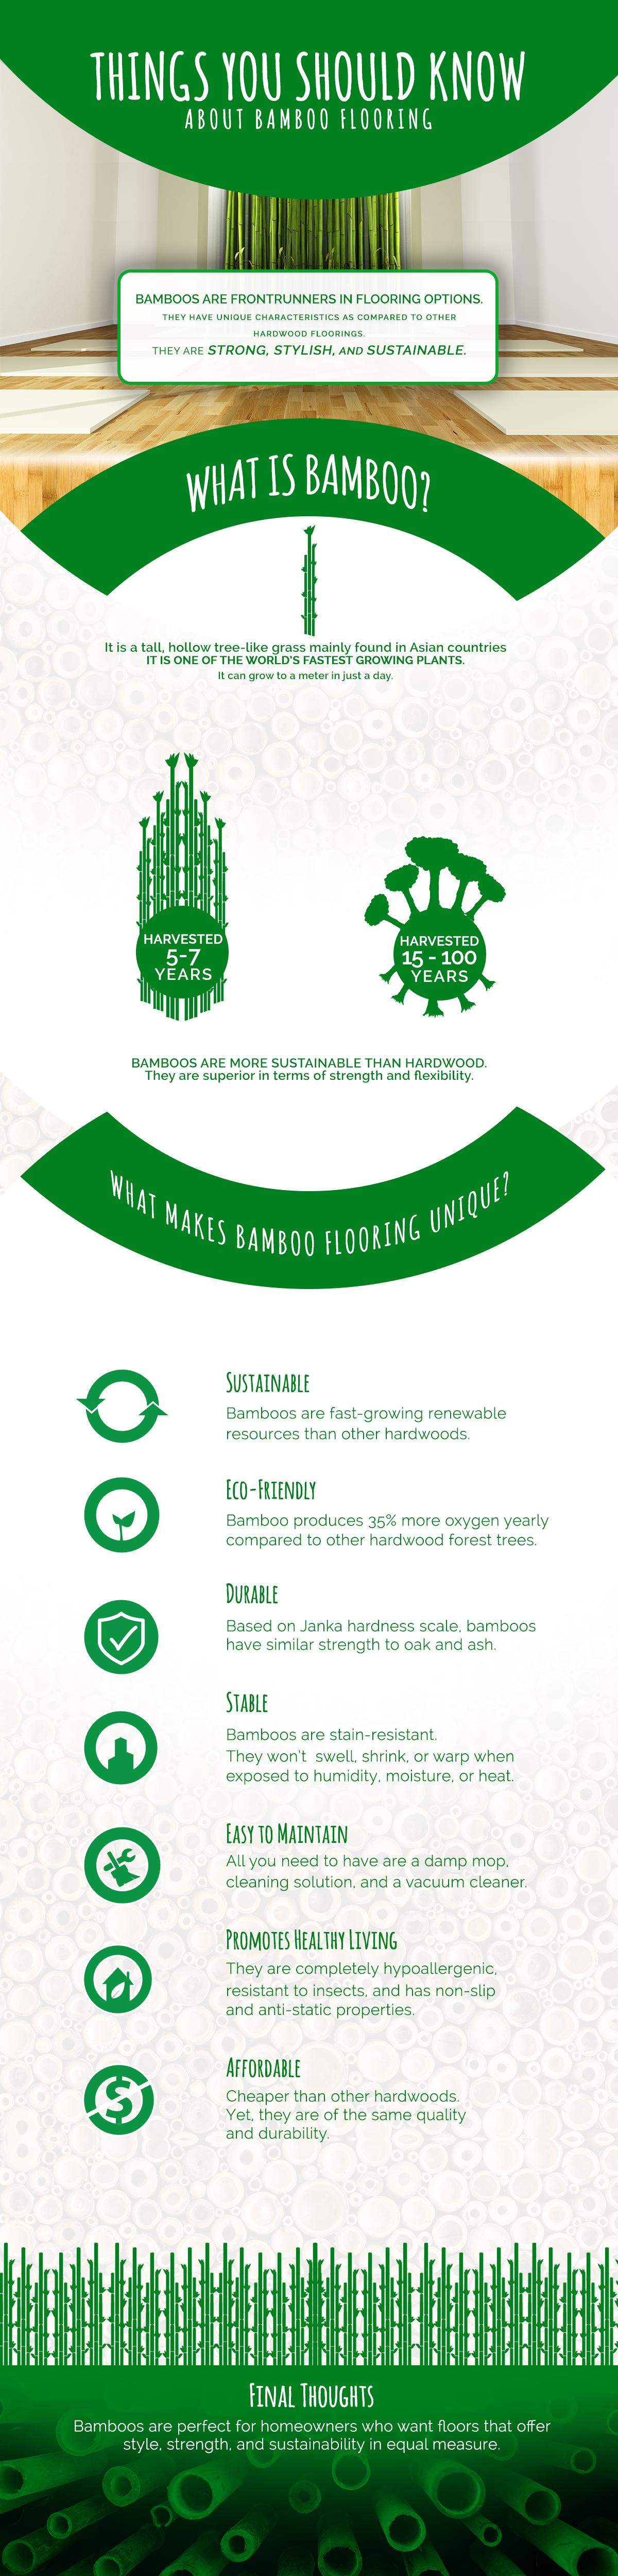 bamboo-flooring-facts-infographic-plaza